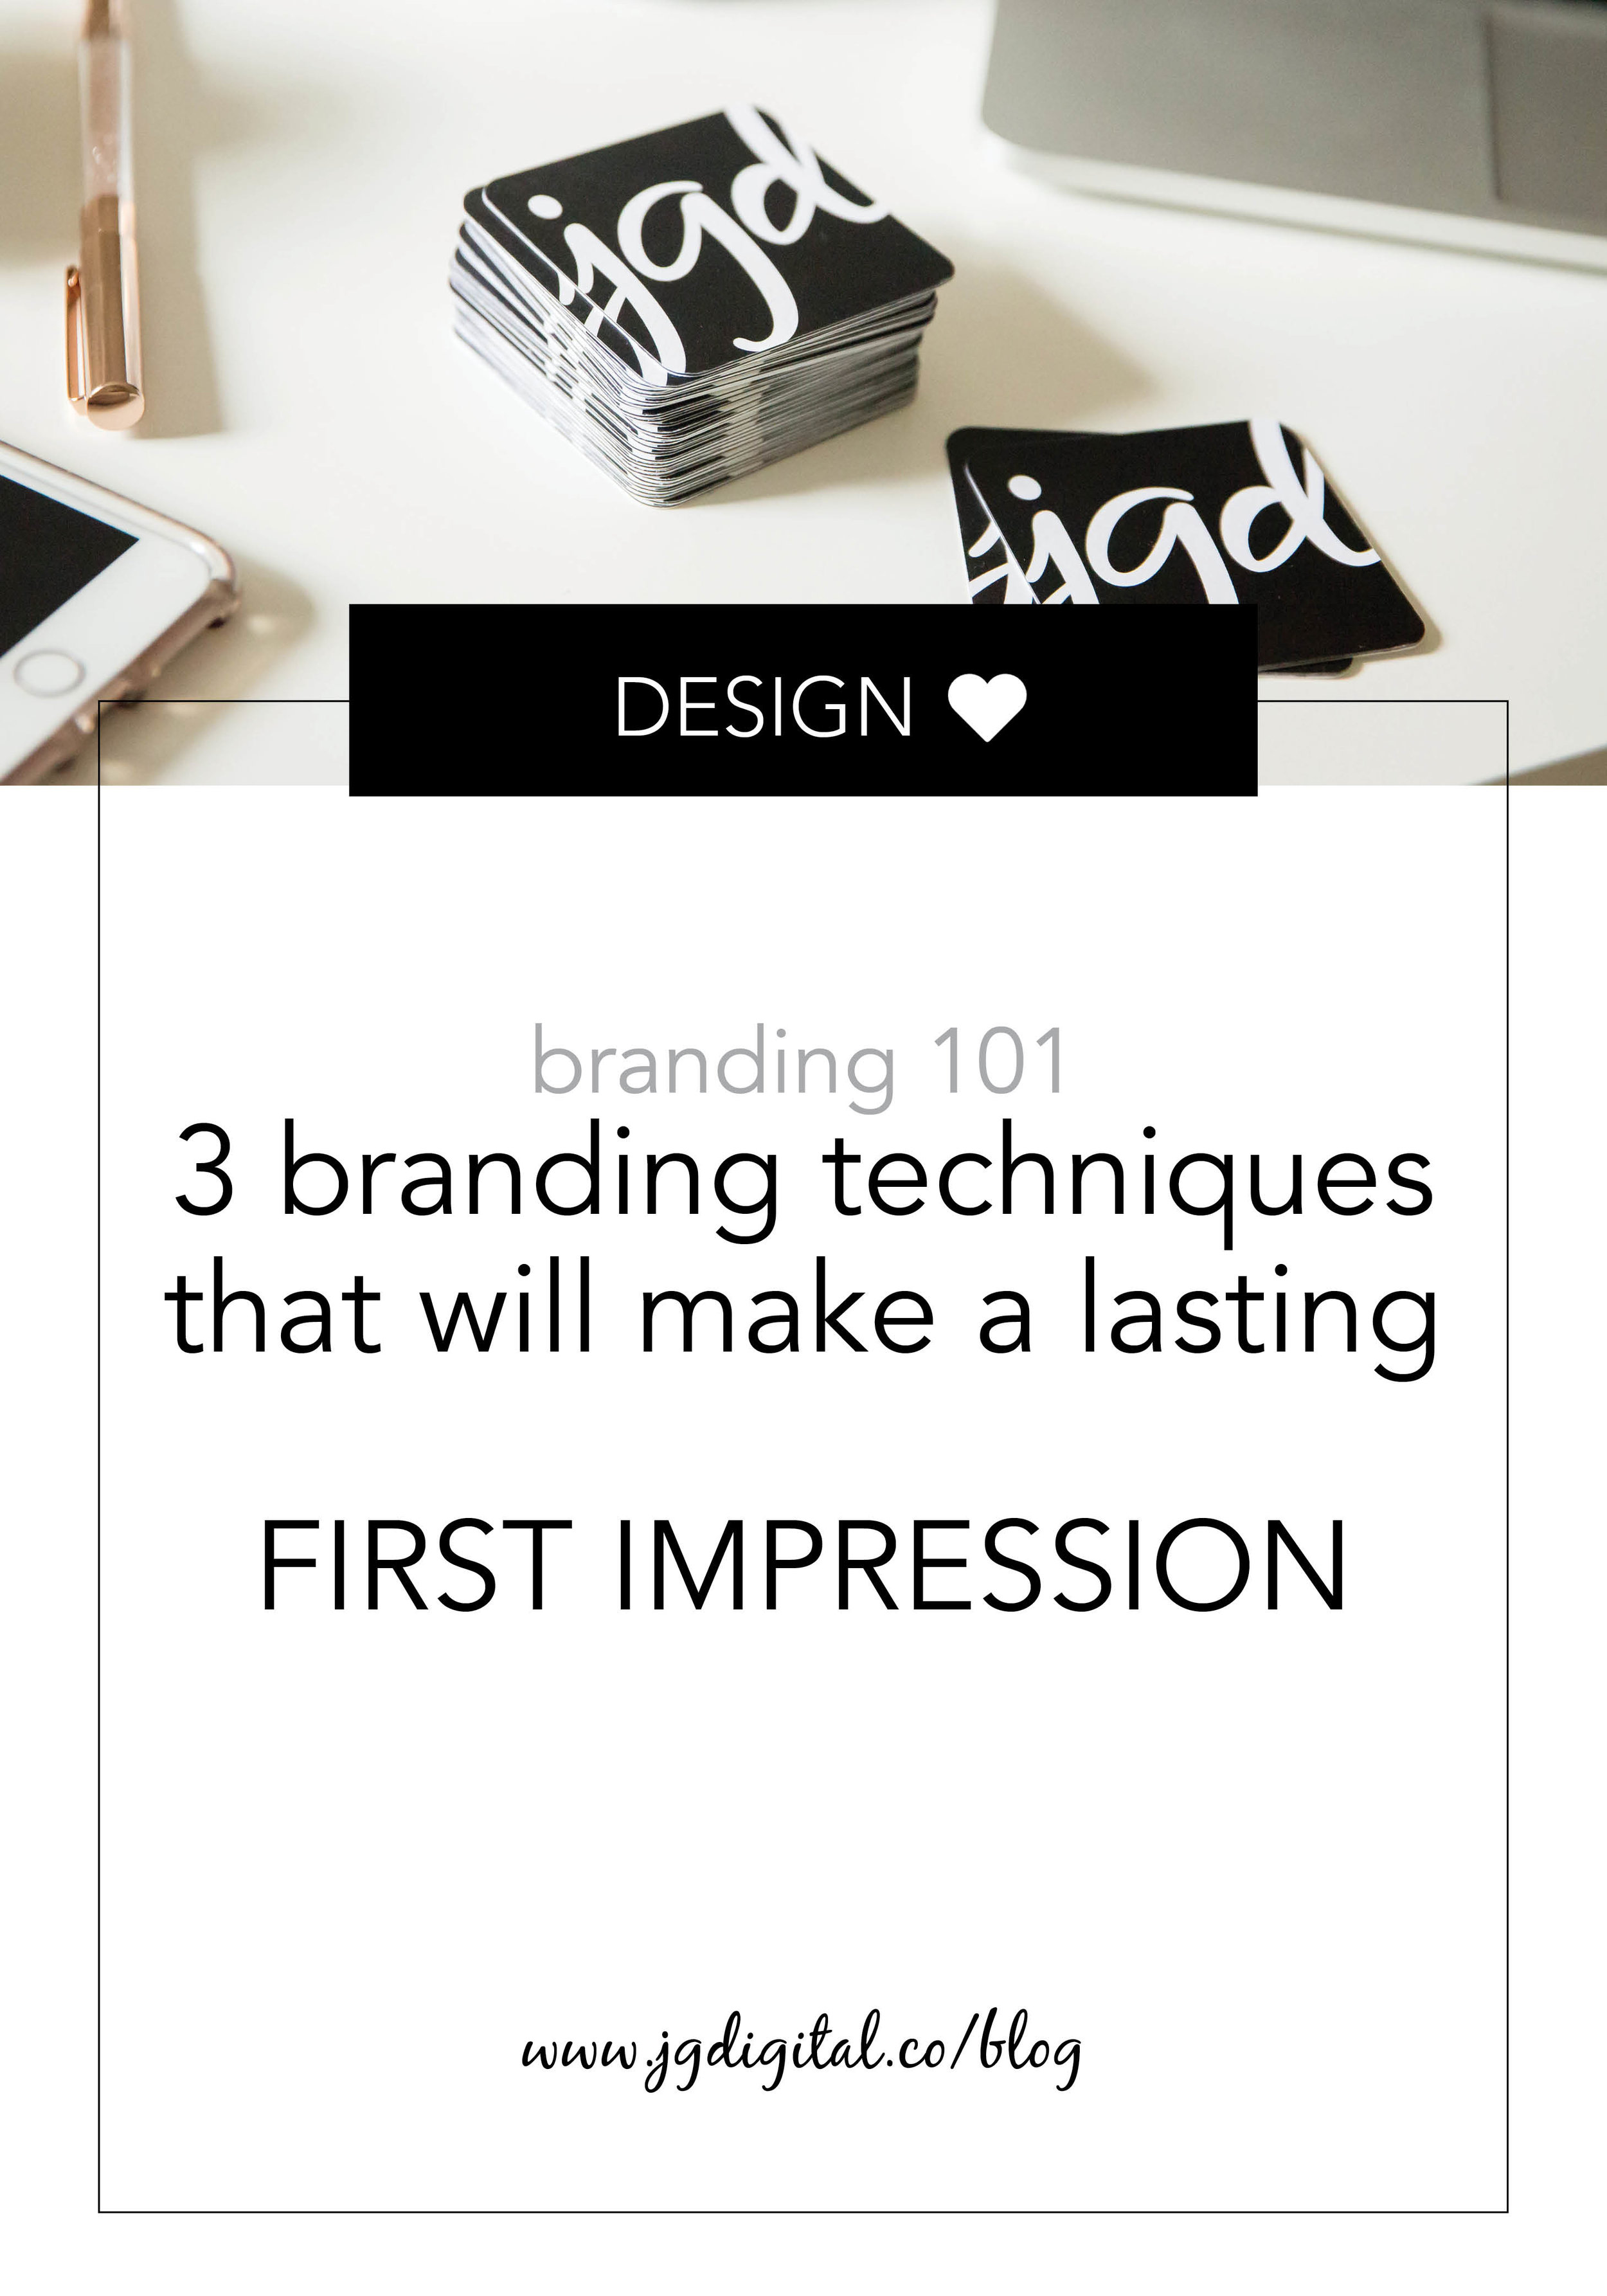 Leave a Lasting Mark & Make a Great First Impression with these 3 Branding Techniques by jgdigital.co